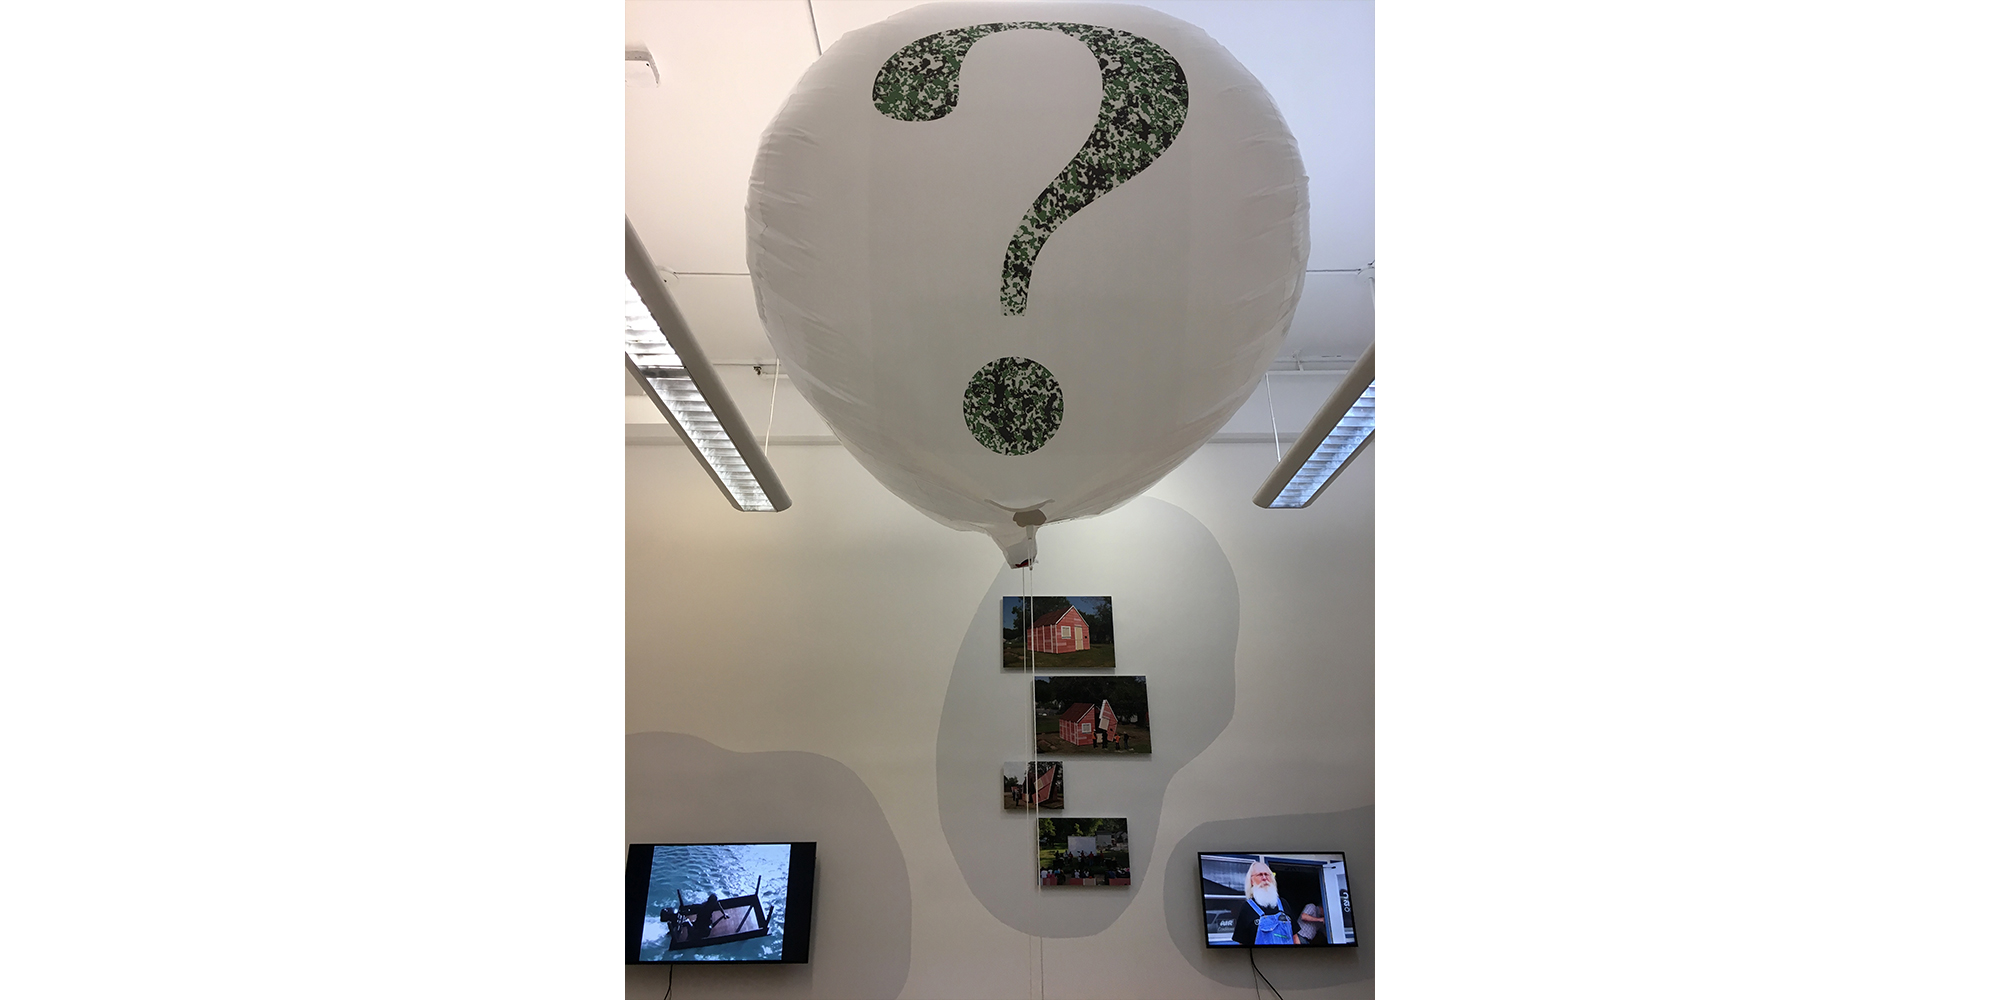 L-R: Jennifer Allora (S.M. Visual Studies, 2003) and Guillermo Calzadilla Under Discussion Single channel video with sound, 6 minutes 14 seconds 2005; Hiroharu Mori (S.M. Visual Studies, 2004) A Camouflaged Question in the Air Balloon 2003/2017; Matthew Mazzotta (S.M. Visual Studies, 2009) OPEN HOUSE and THE STOREFRONT THEATER  Documentary images and video, 2013, 2015